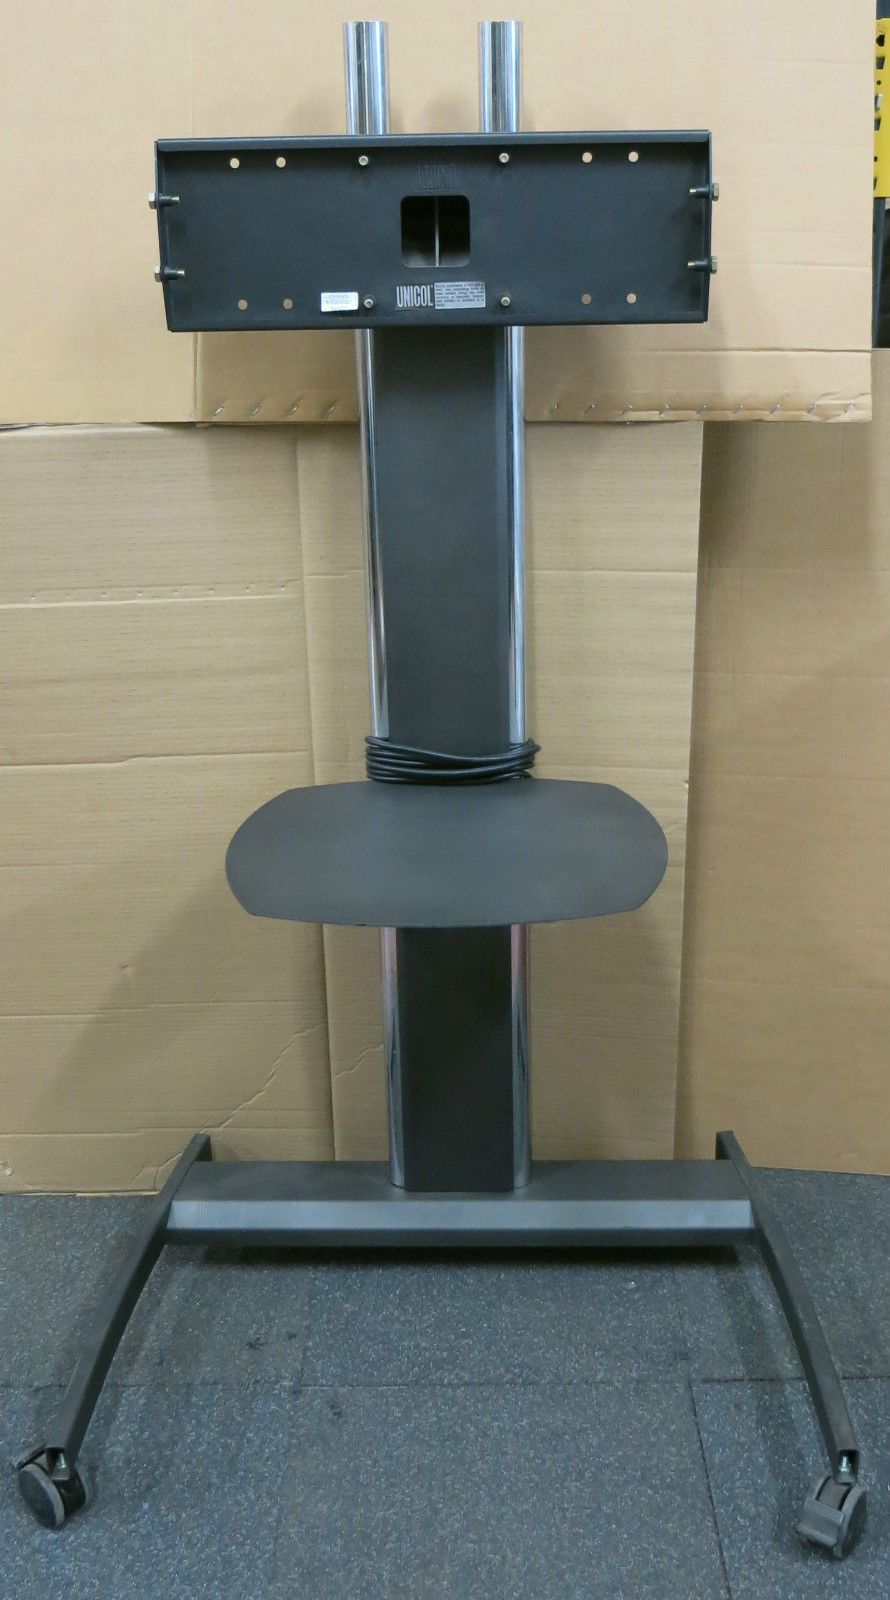 Unicol Monitor Stand Trolley For Panasonic Th42pw Plasma